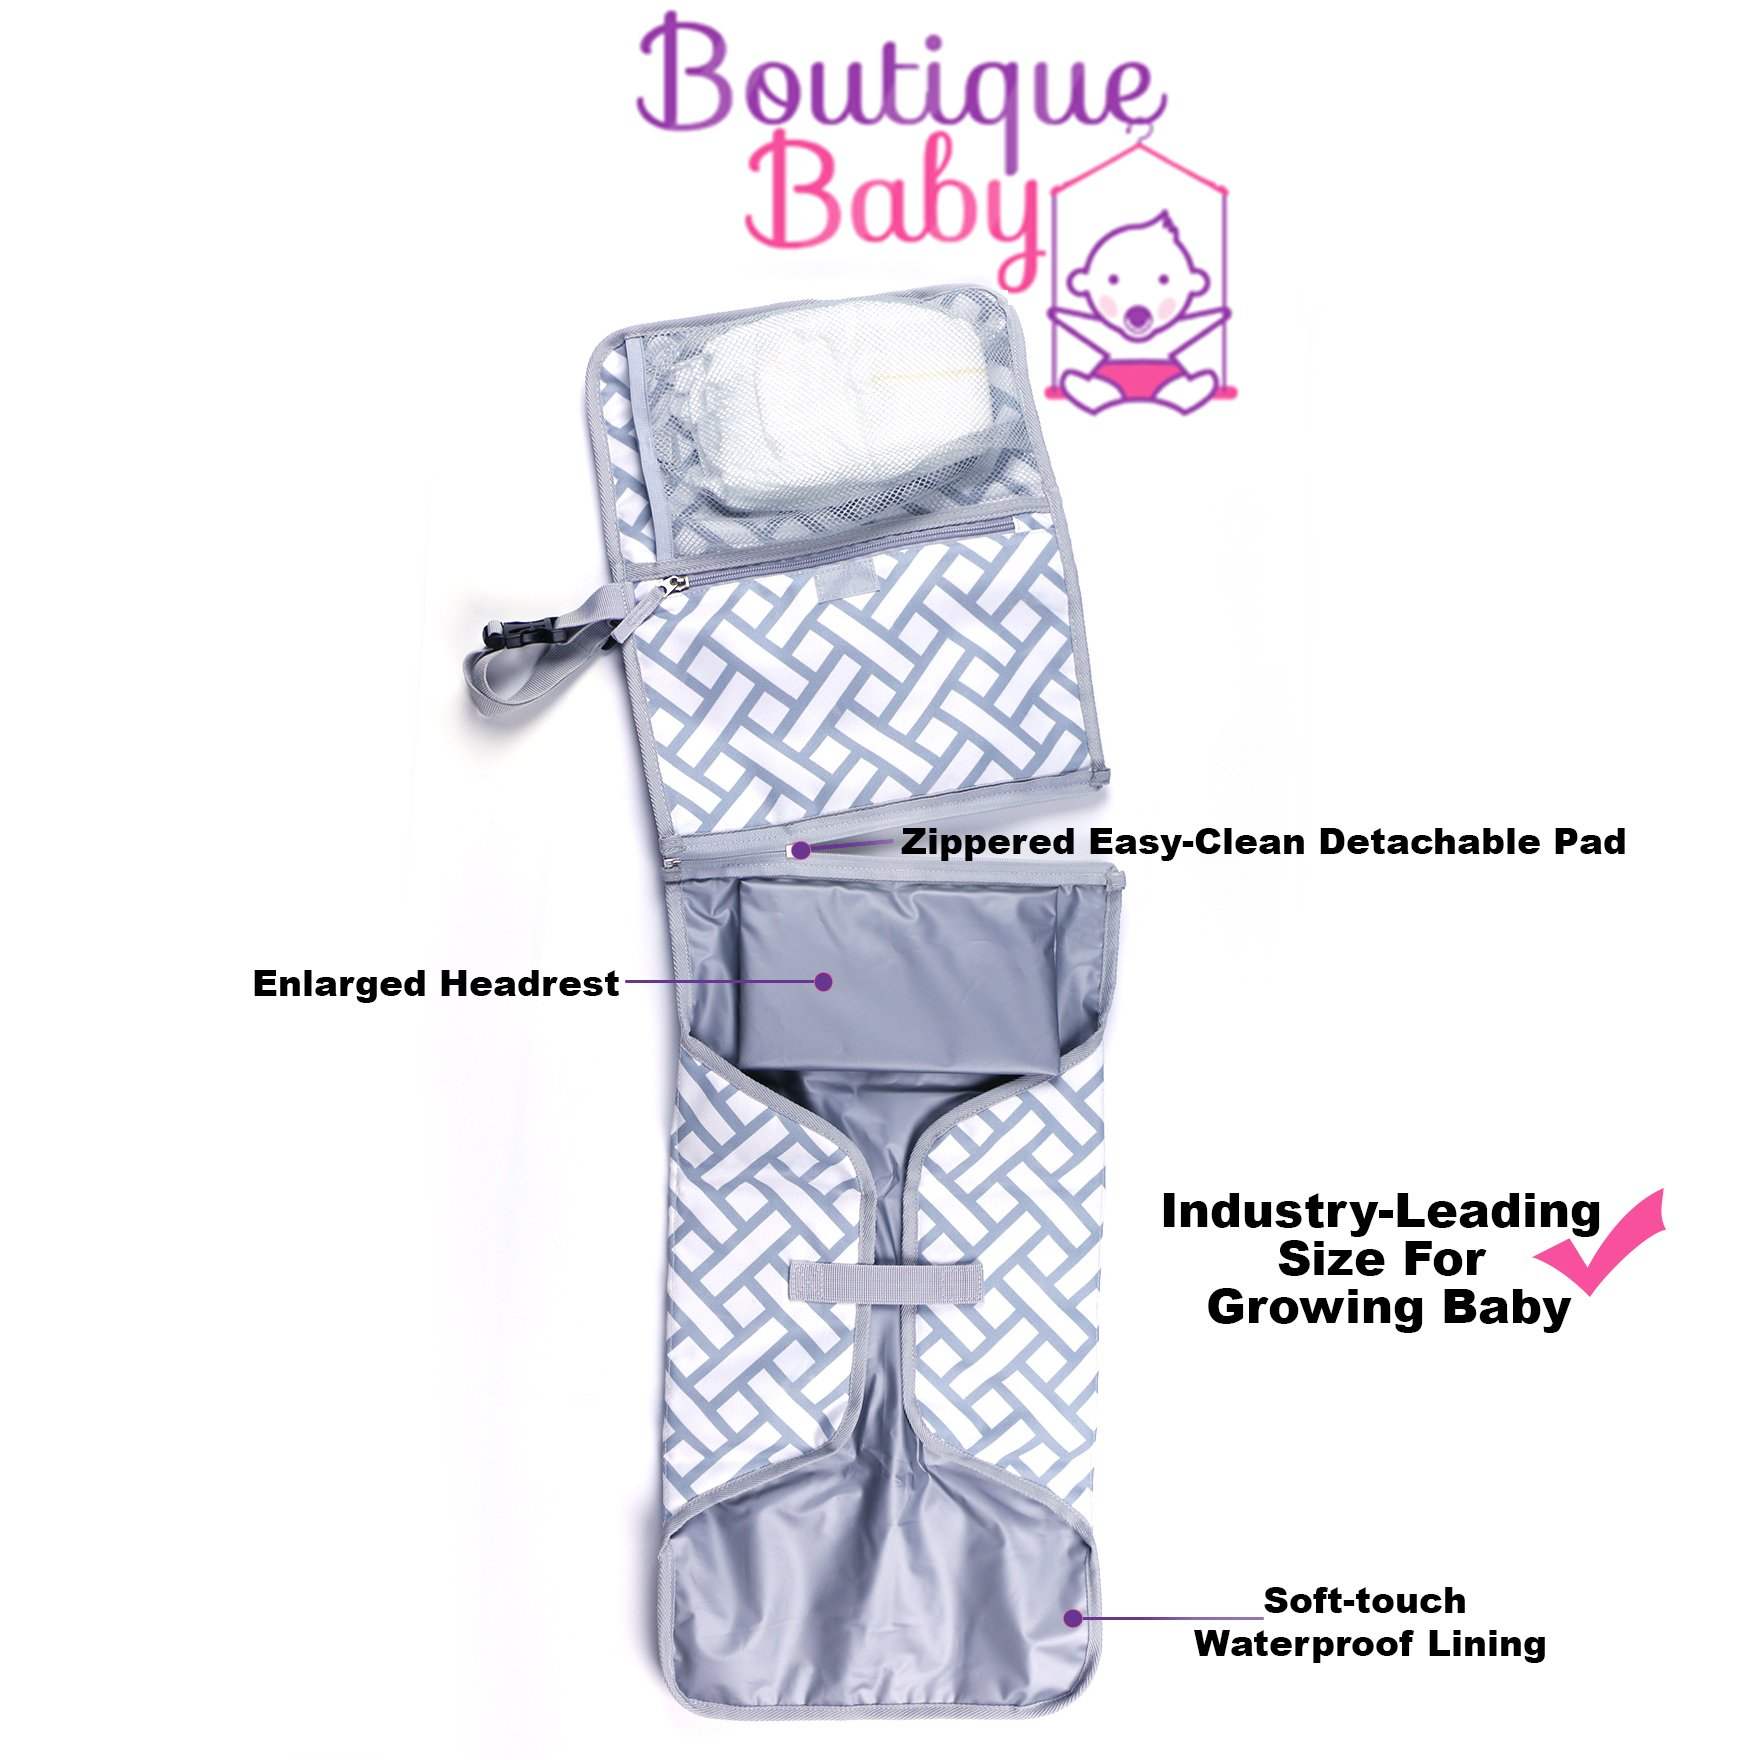 Baby Changing Pad By Boutique Baby Portable Diaper Changing Pad Station Waterproof Extra Long  Travel Clutch by Boutique Baby (Image #7)